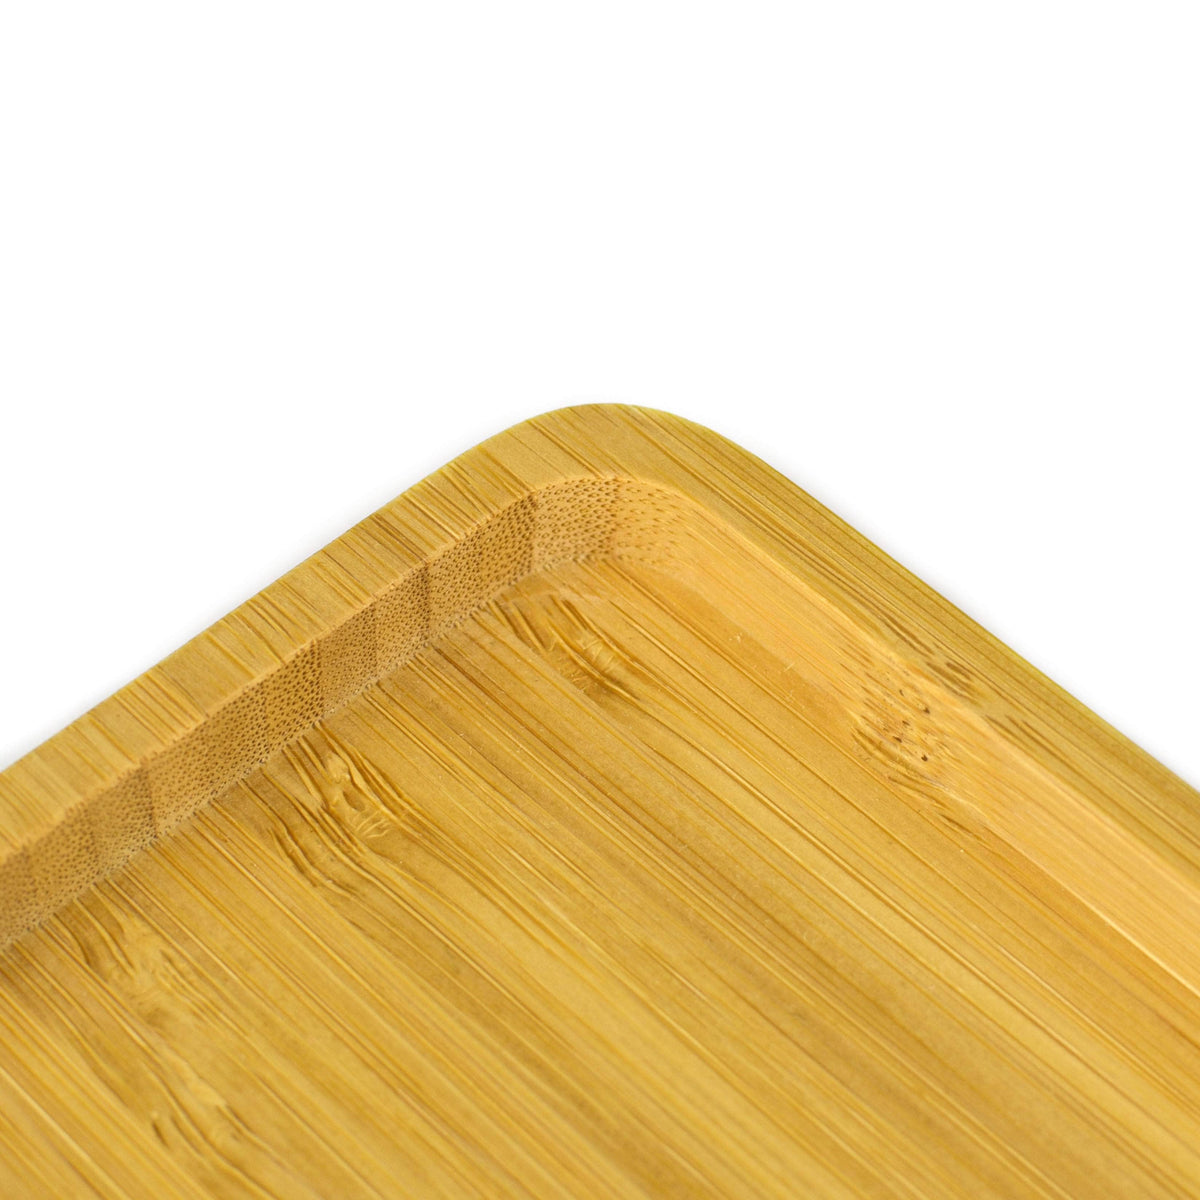 *New* Rectangular serving tray